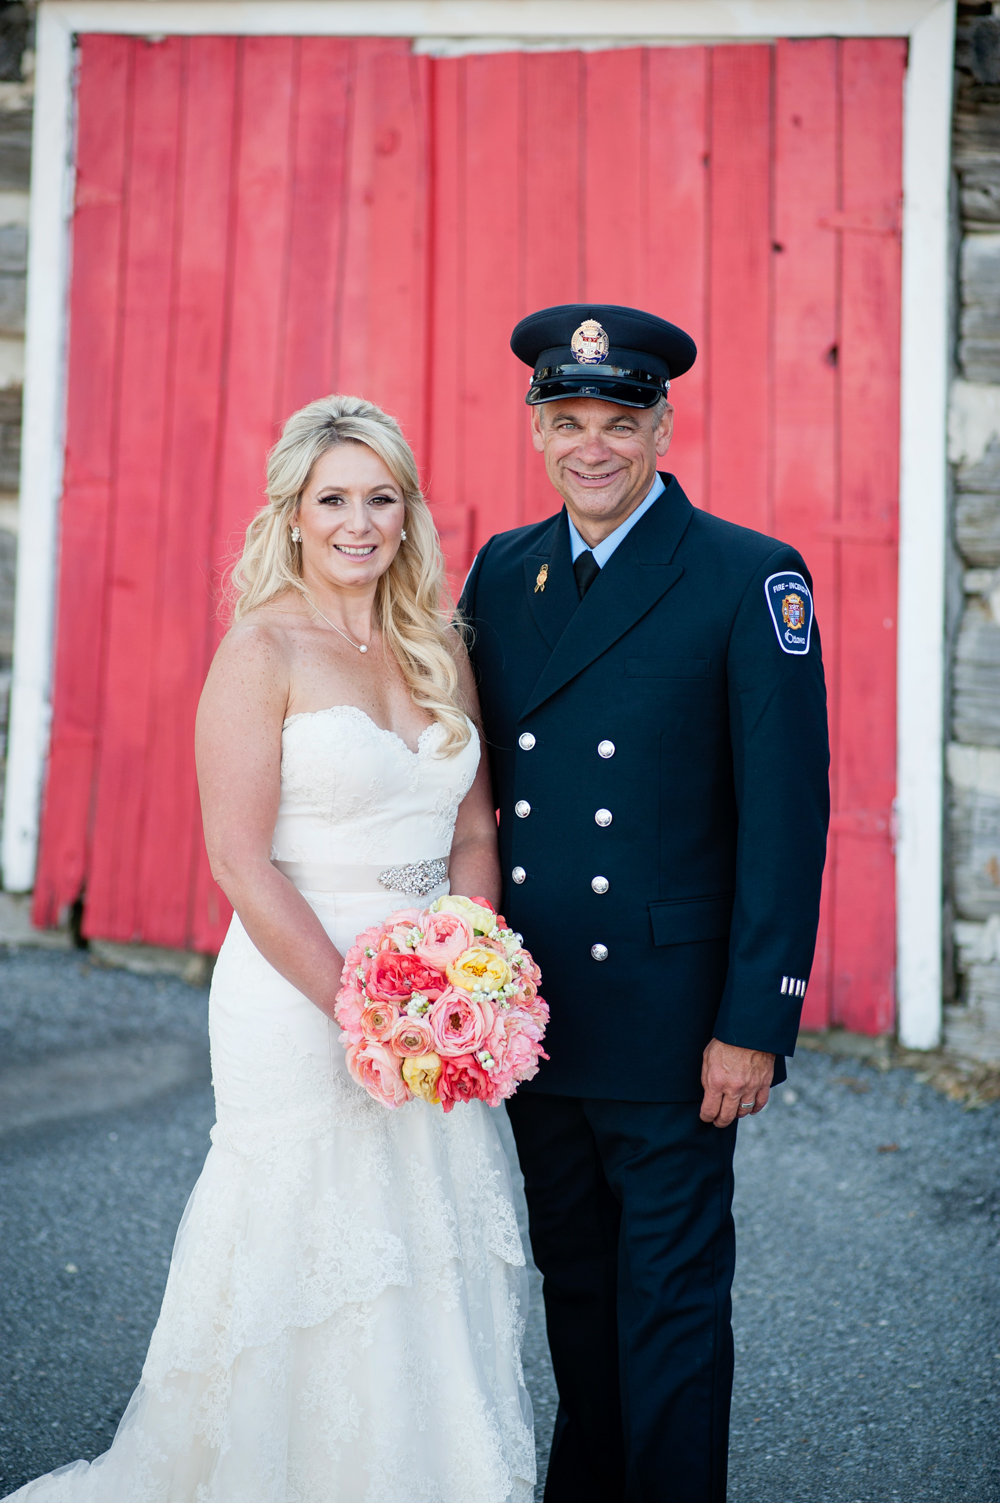 black-lamb-photography-ottawa-wedding-photographer-fire-fighter-themed-wedding-shoot-25